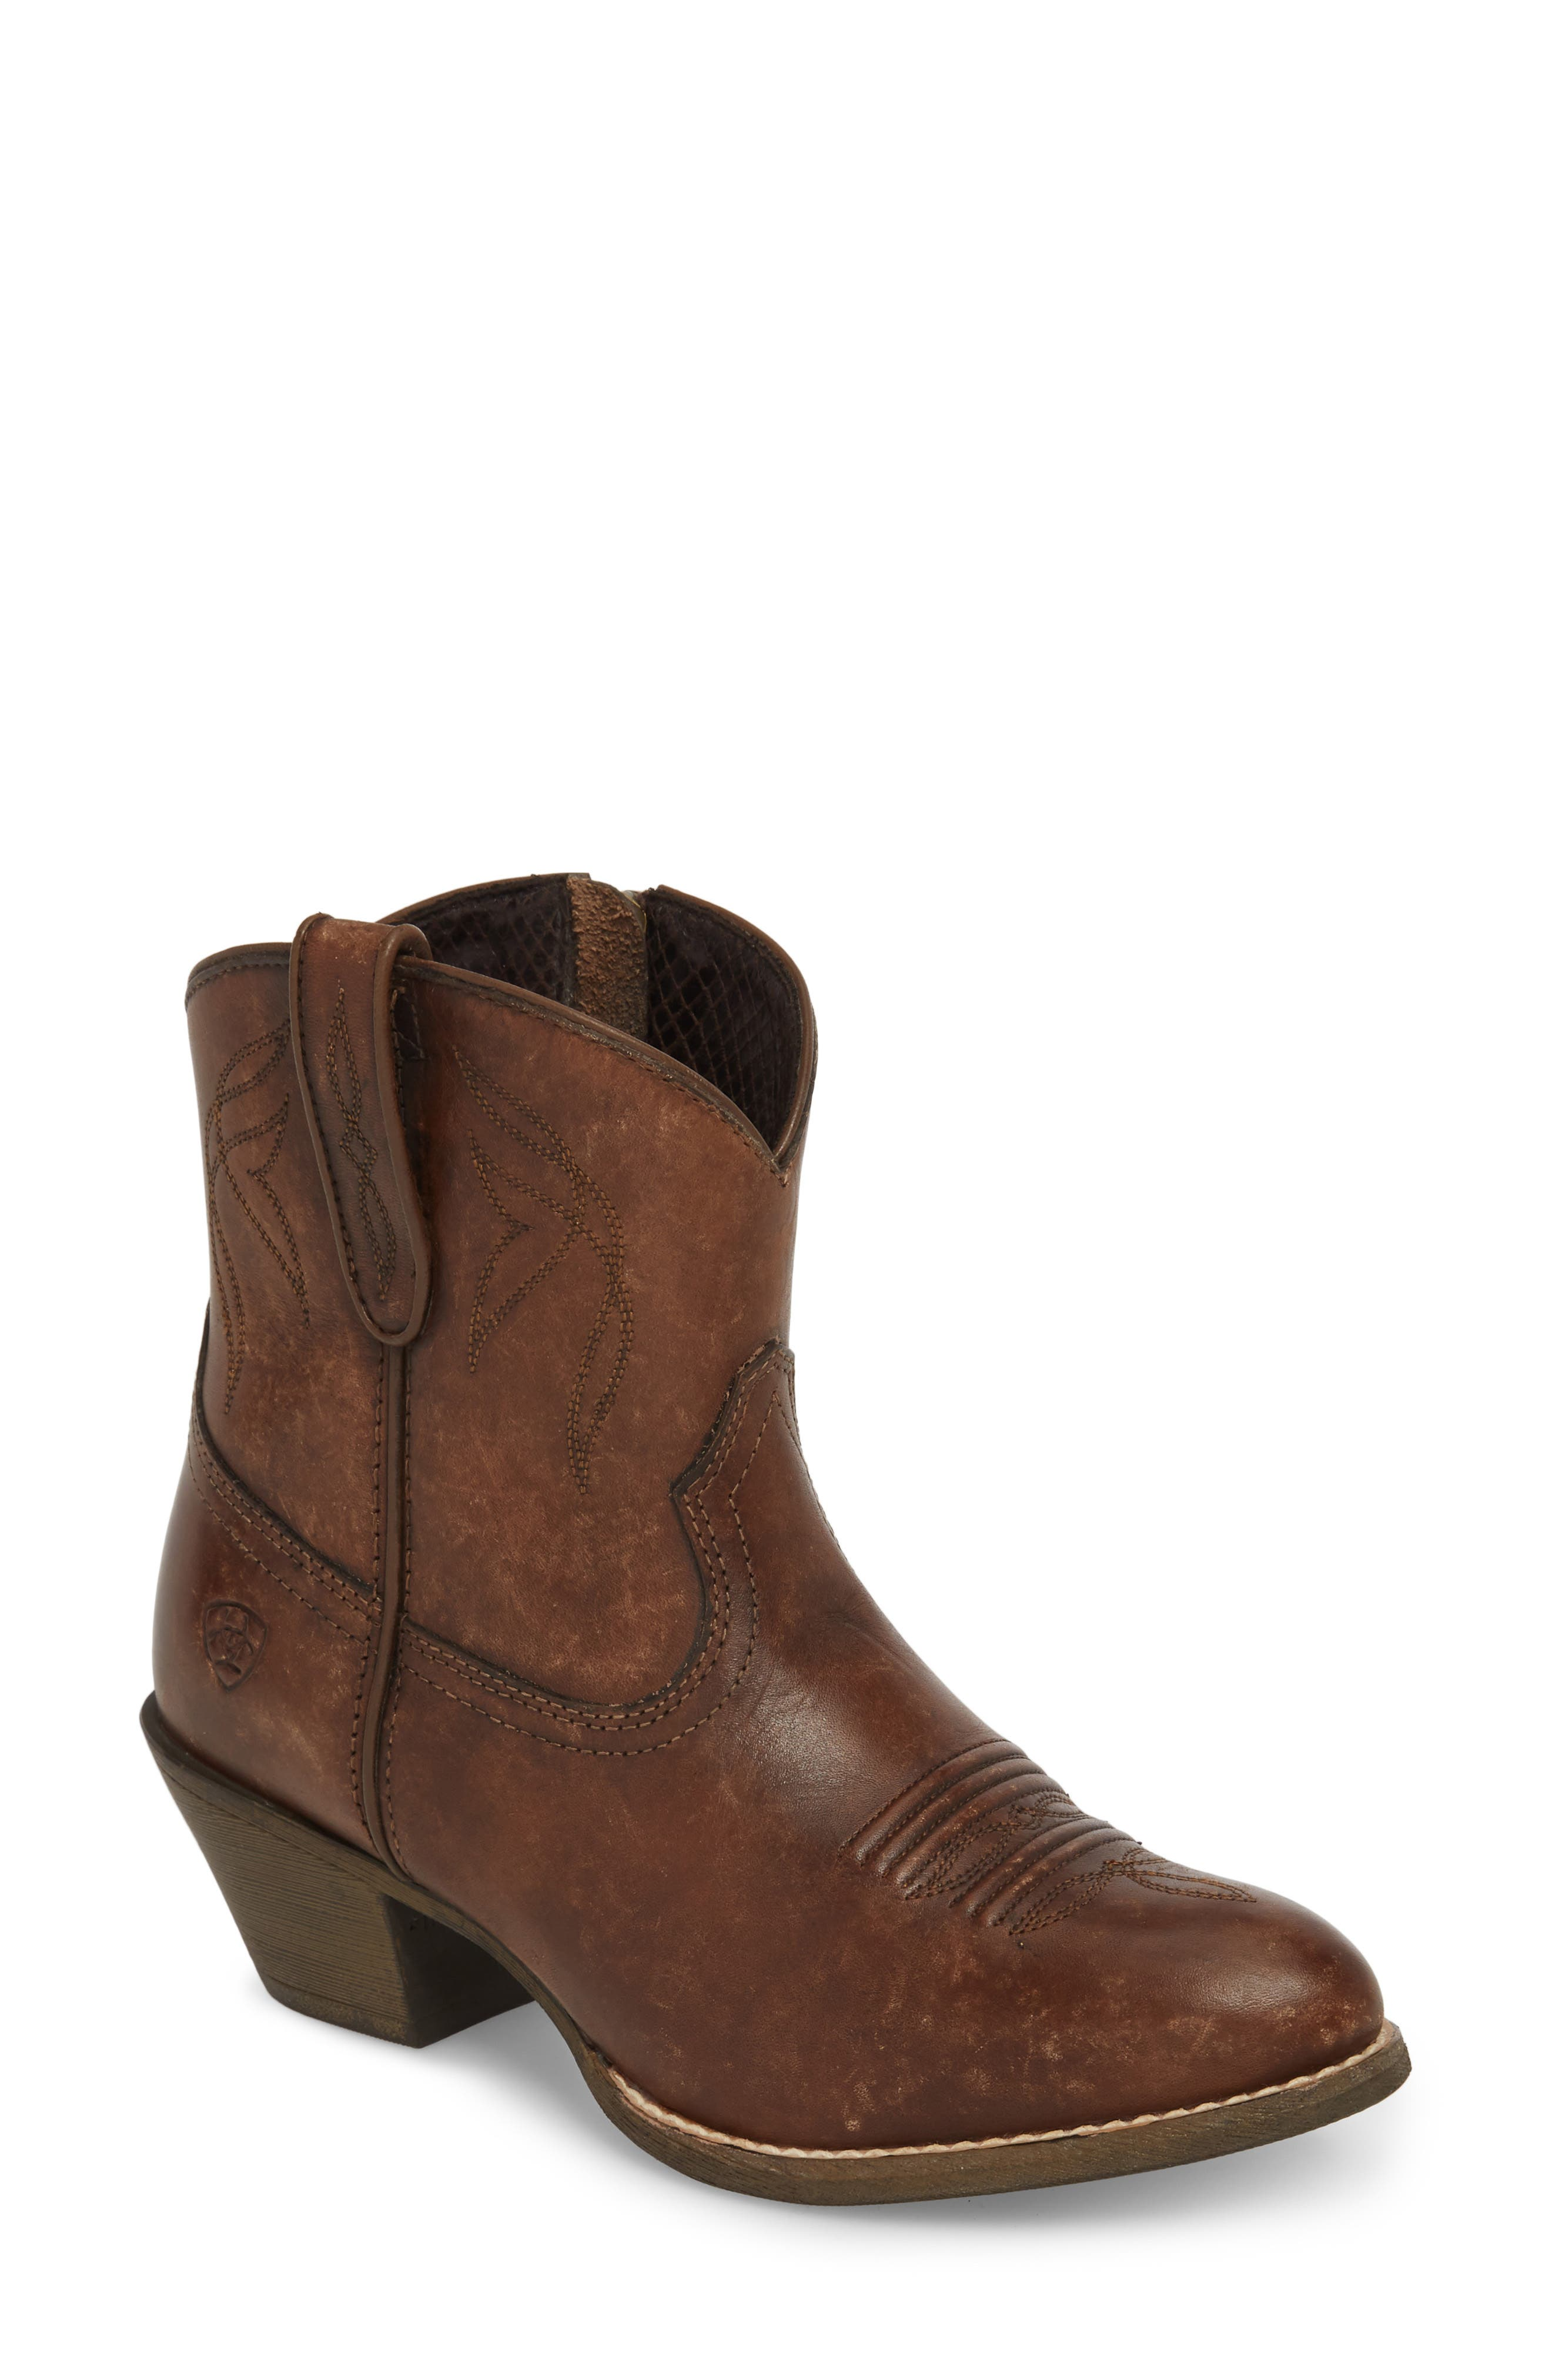 ARIAT Darlin Short Western Boot in Distressed Brown Leather